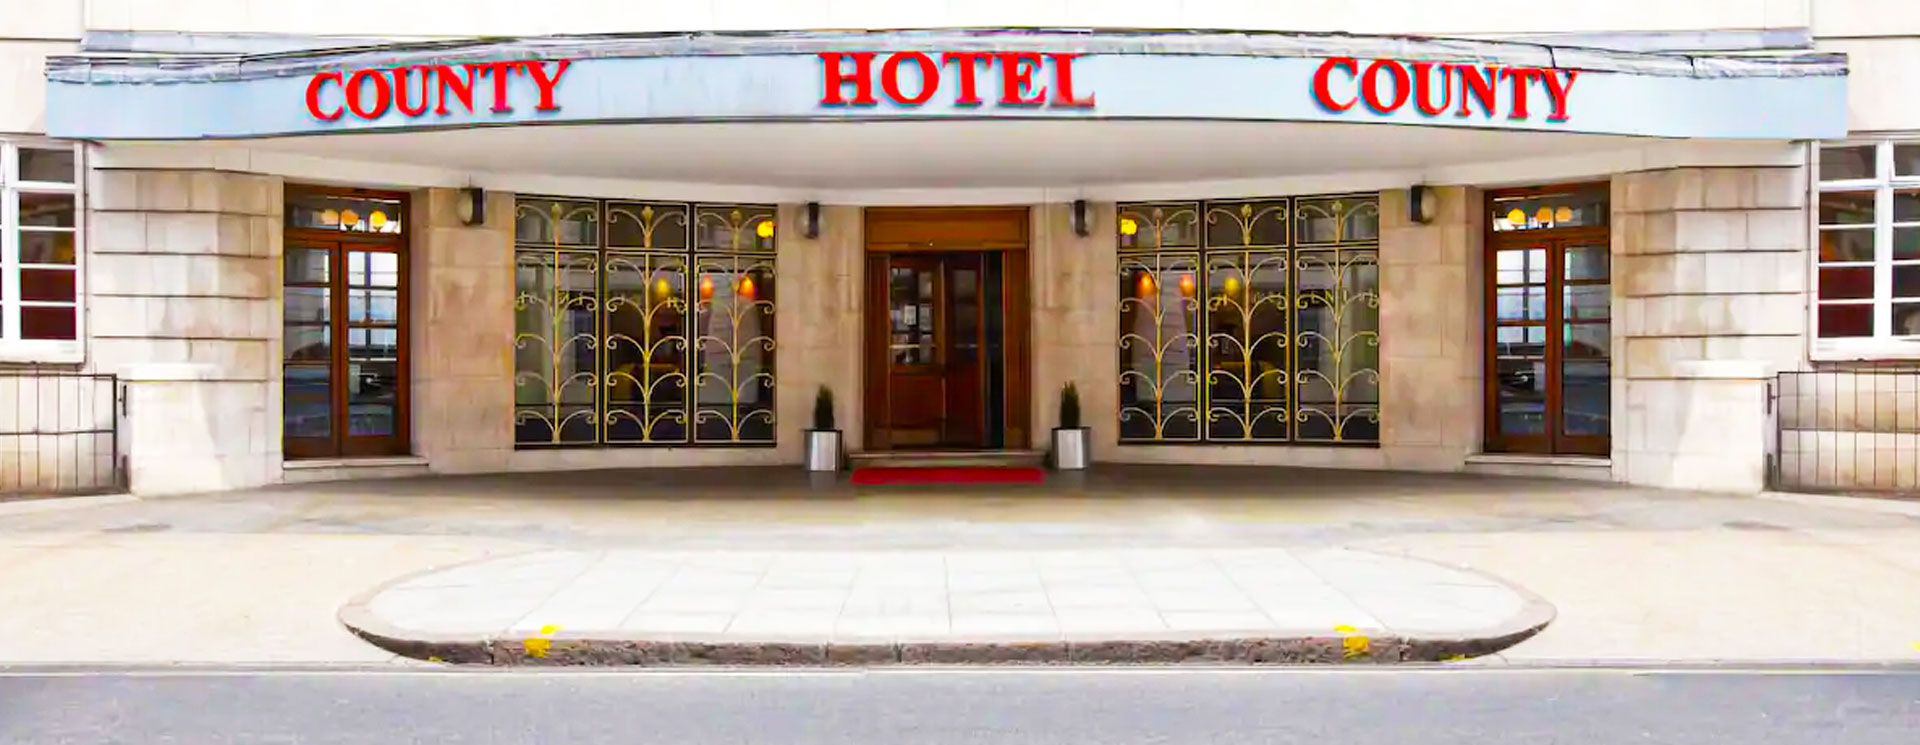 The County Hotel - Budget Hotels near Kings Cross in Central London